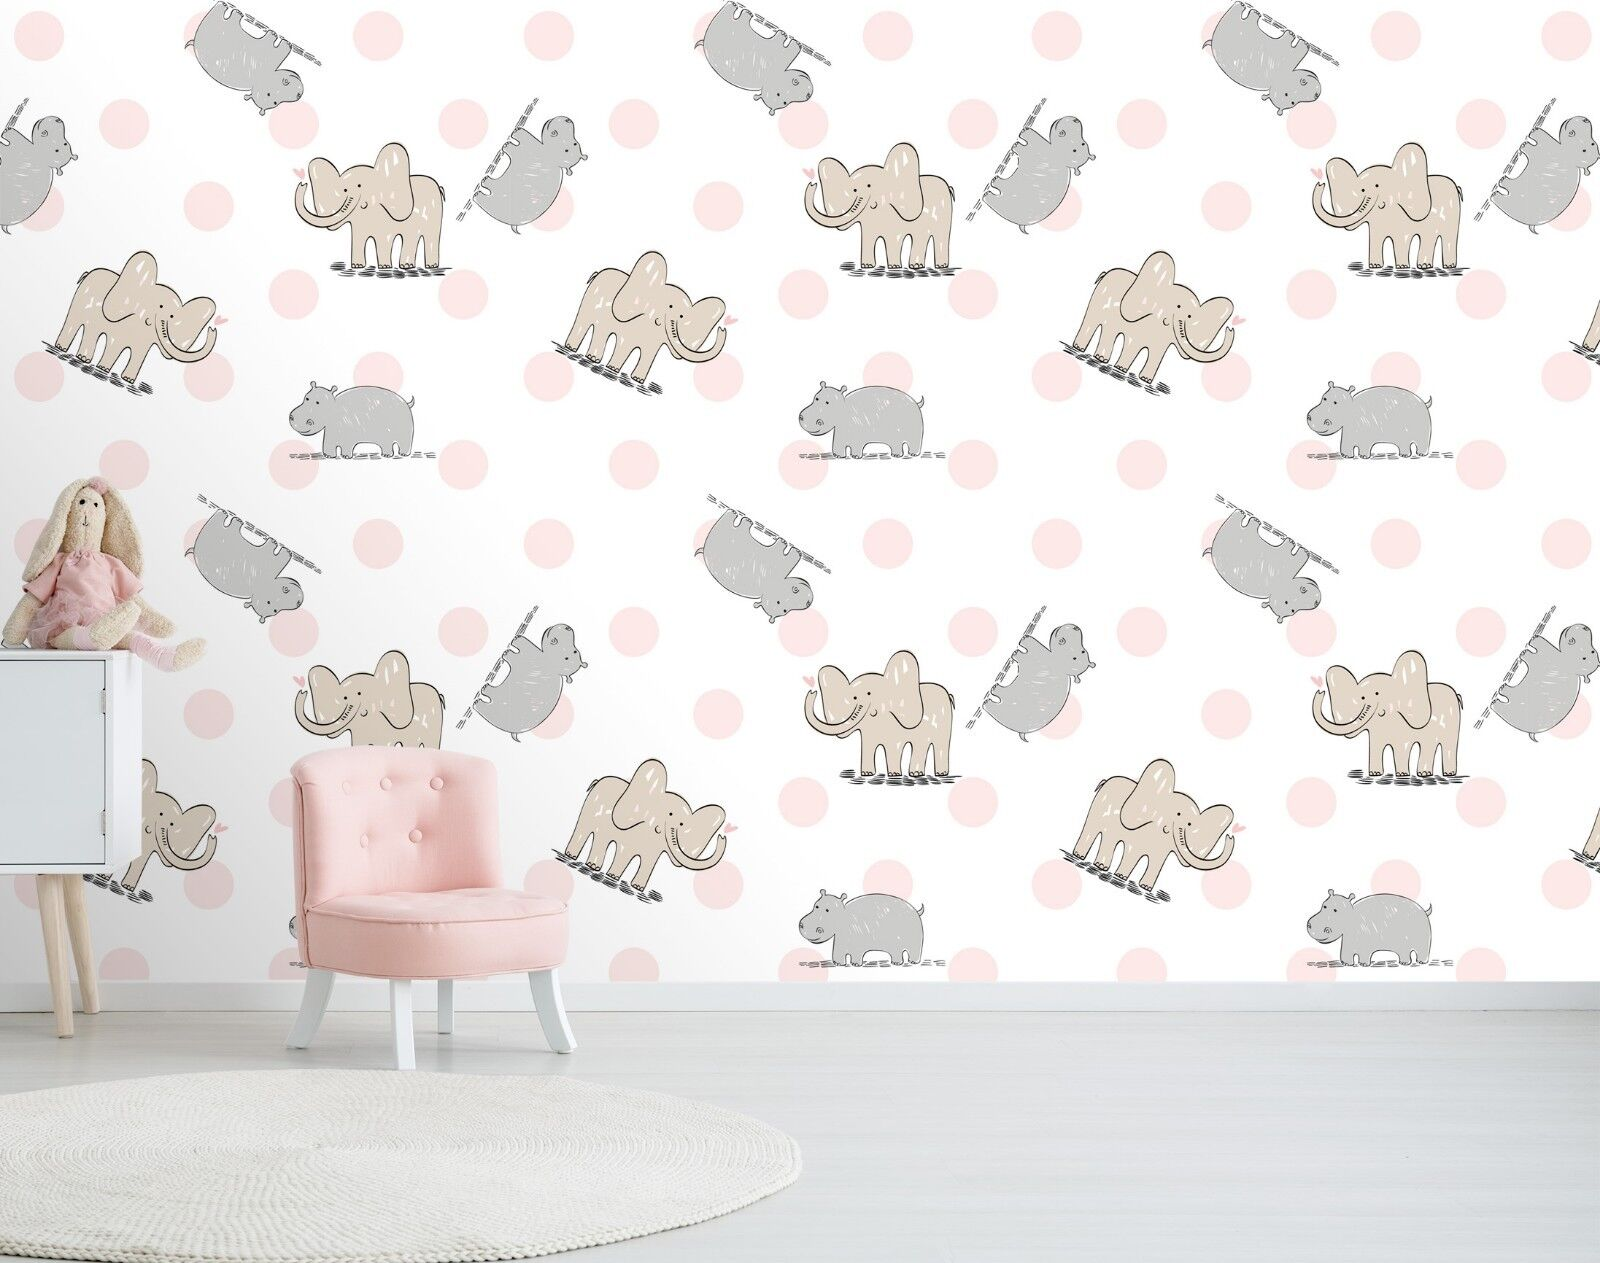 3D Elephant 7045 7045 7045 Wall Paper Print Wall Decal Deco Indoor Wall Murals US Summer d4cd69